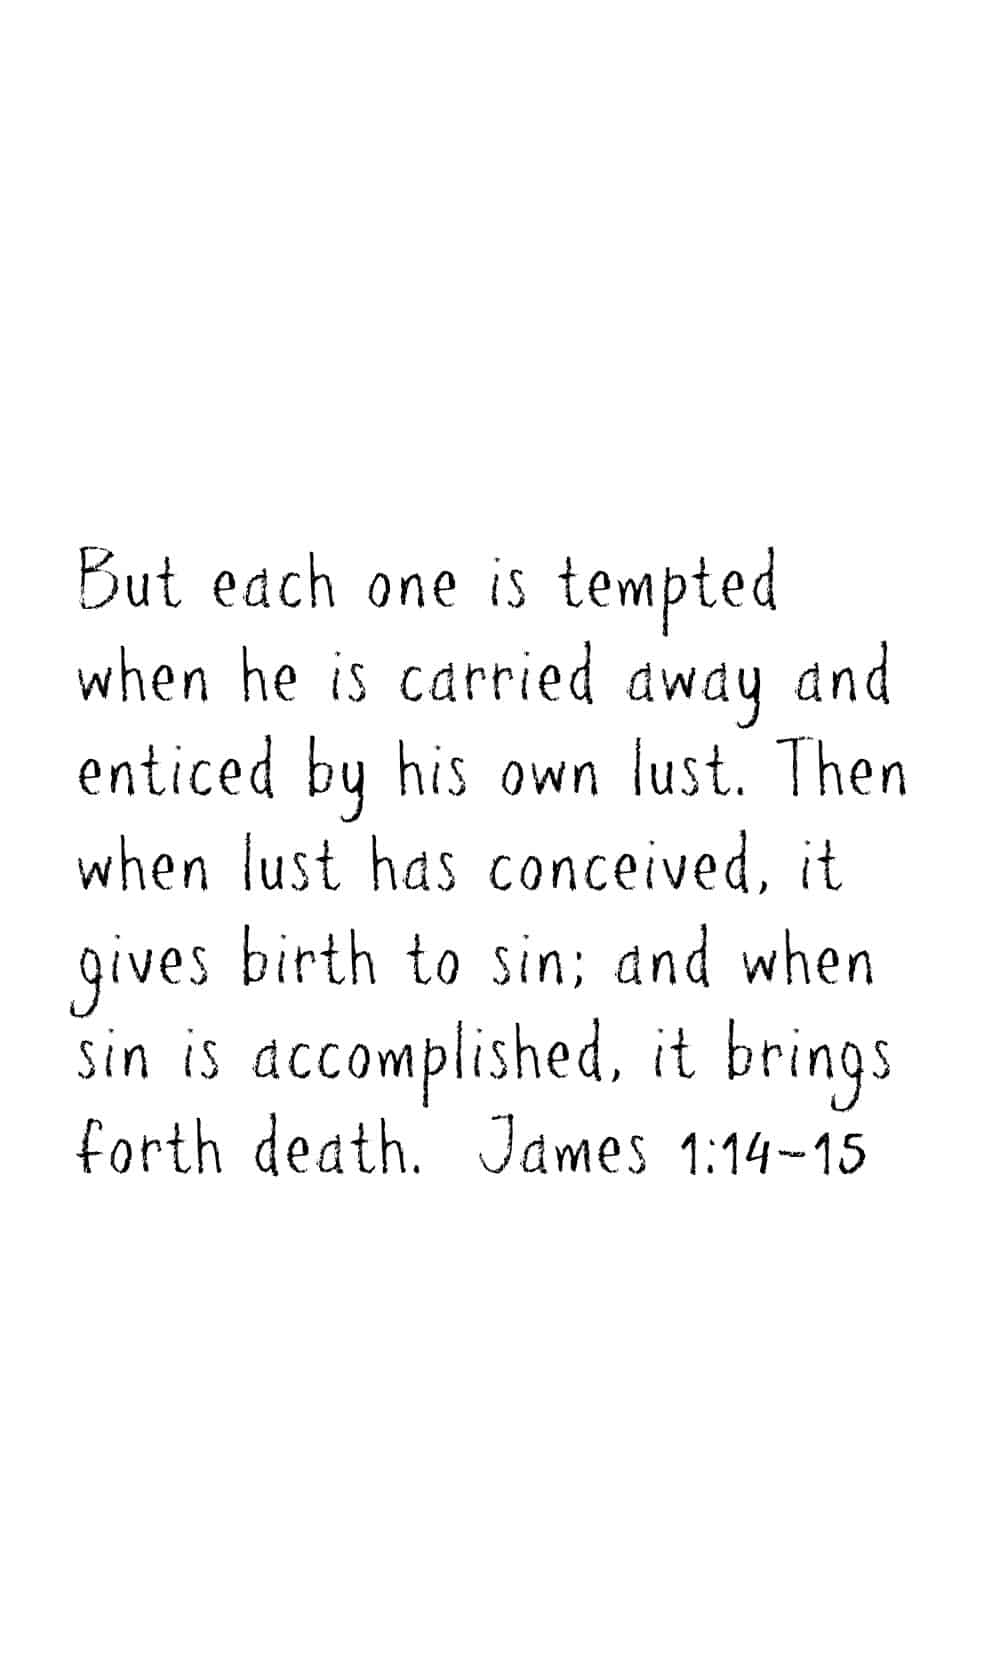 Scripture Memory Wallpaper for iPhones | James 1:14-15